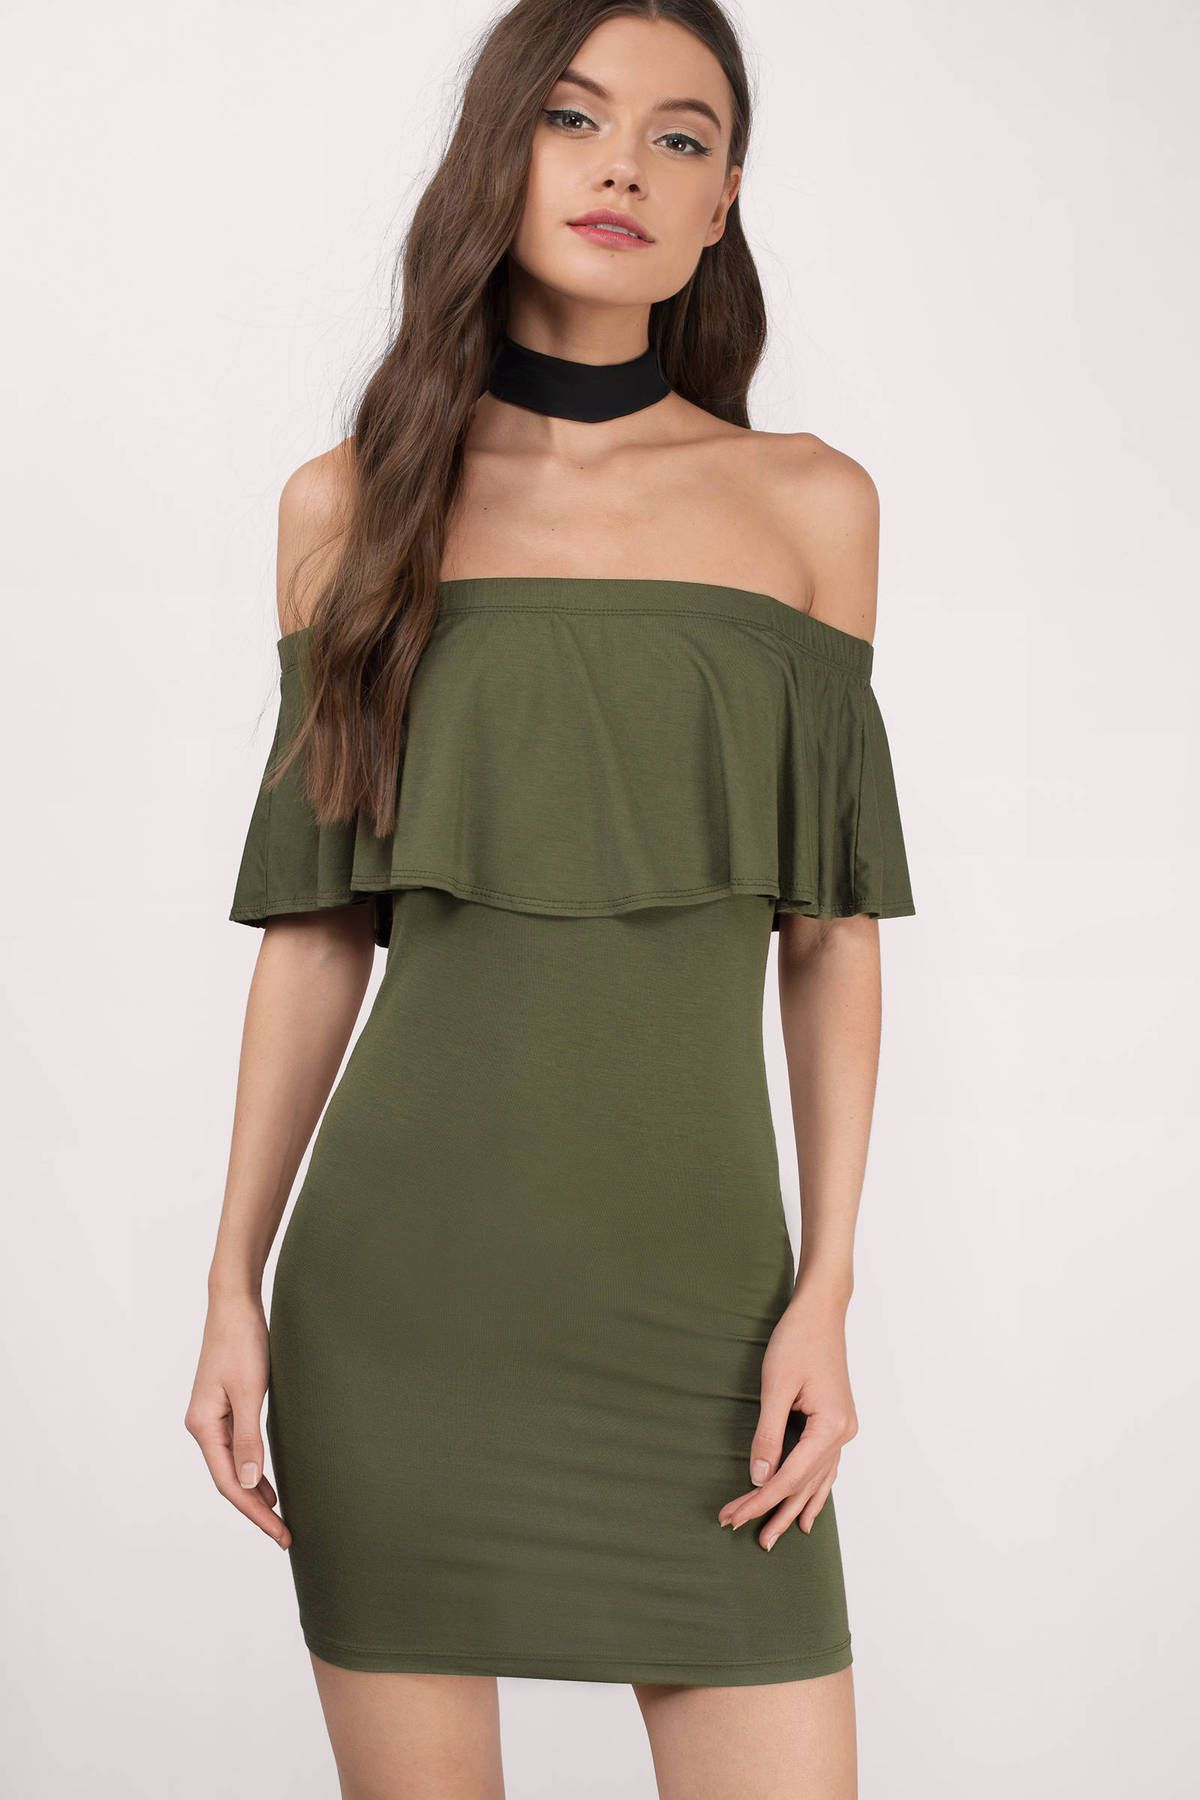 7a44bedb463f This olive shift dress is the ultimate off-the-shoulder dress!